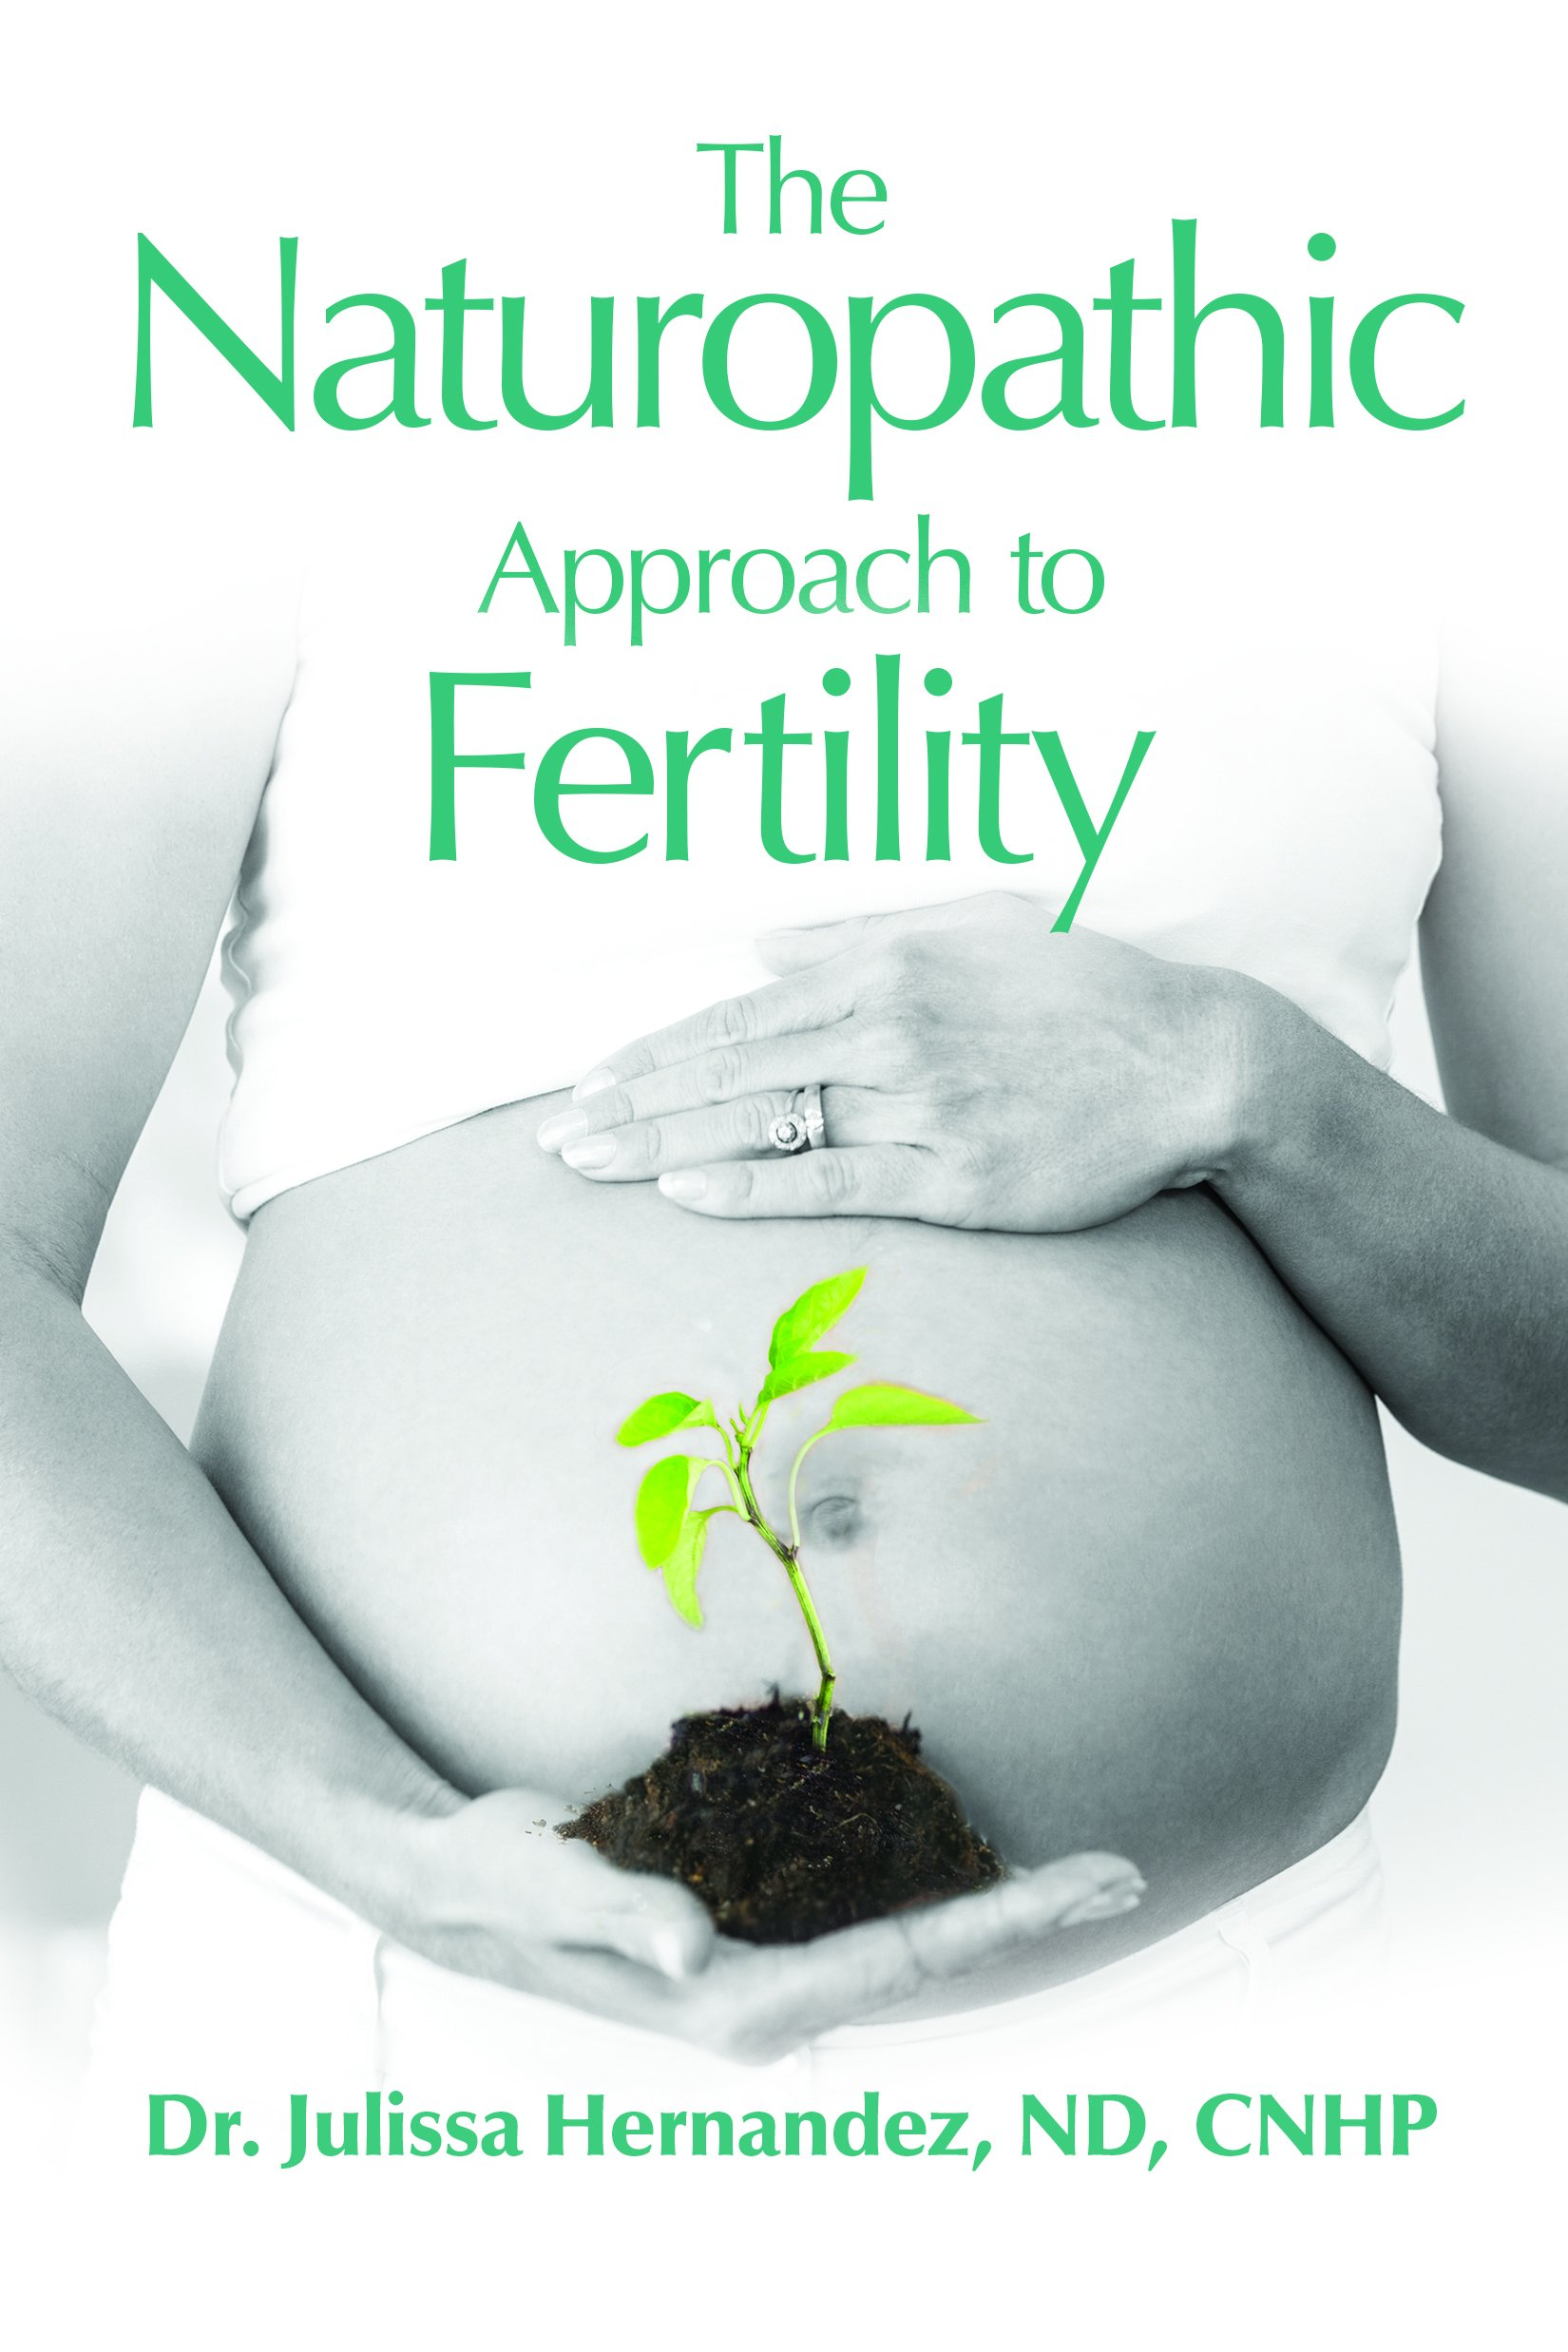 The Naturopathic Approach To Fertility Dr Julissa Hernandez Nd